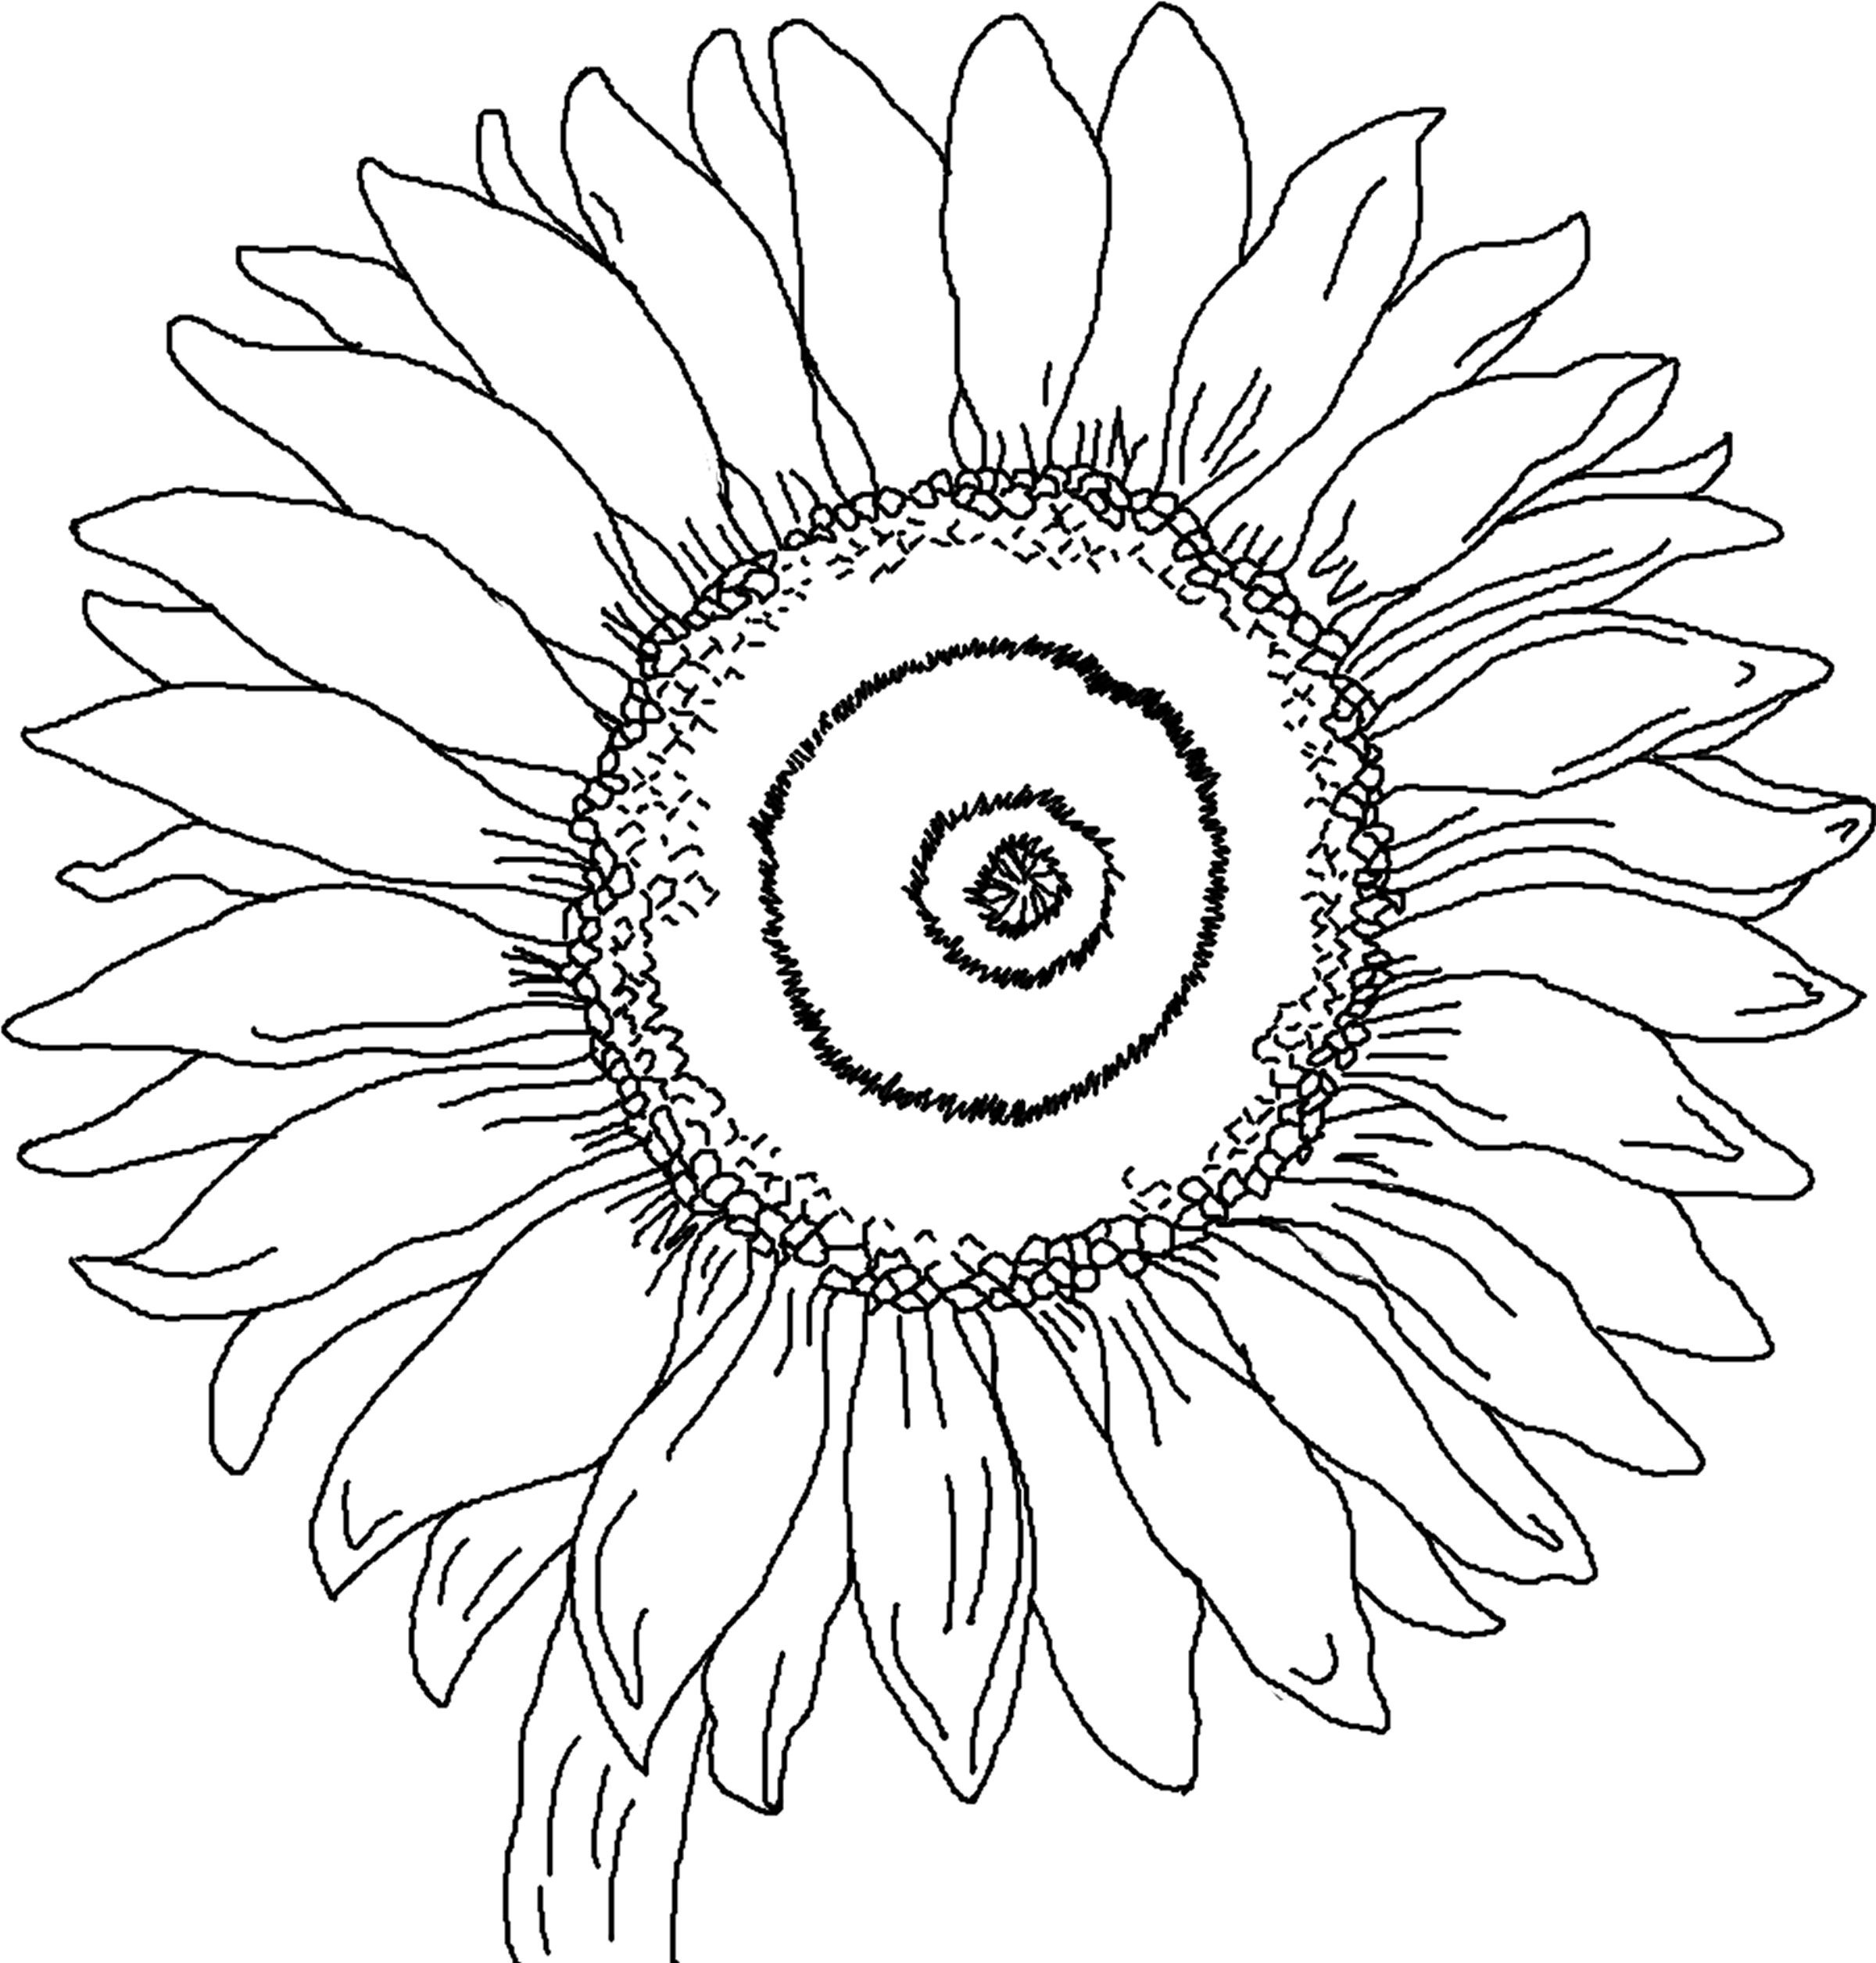 sunflower coloring sunflower drawing color at getdrawings free download sunflower coloring